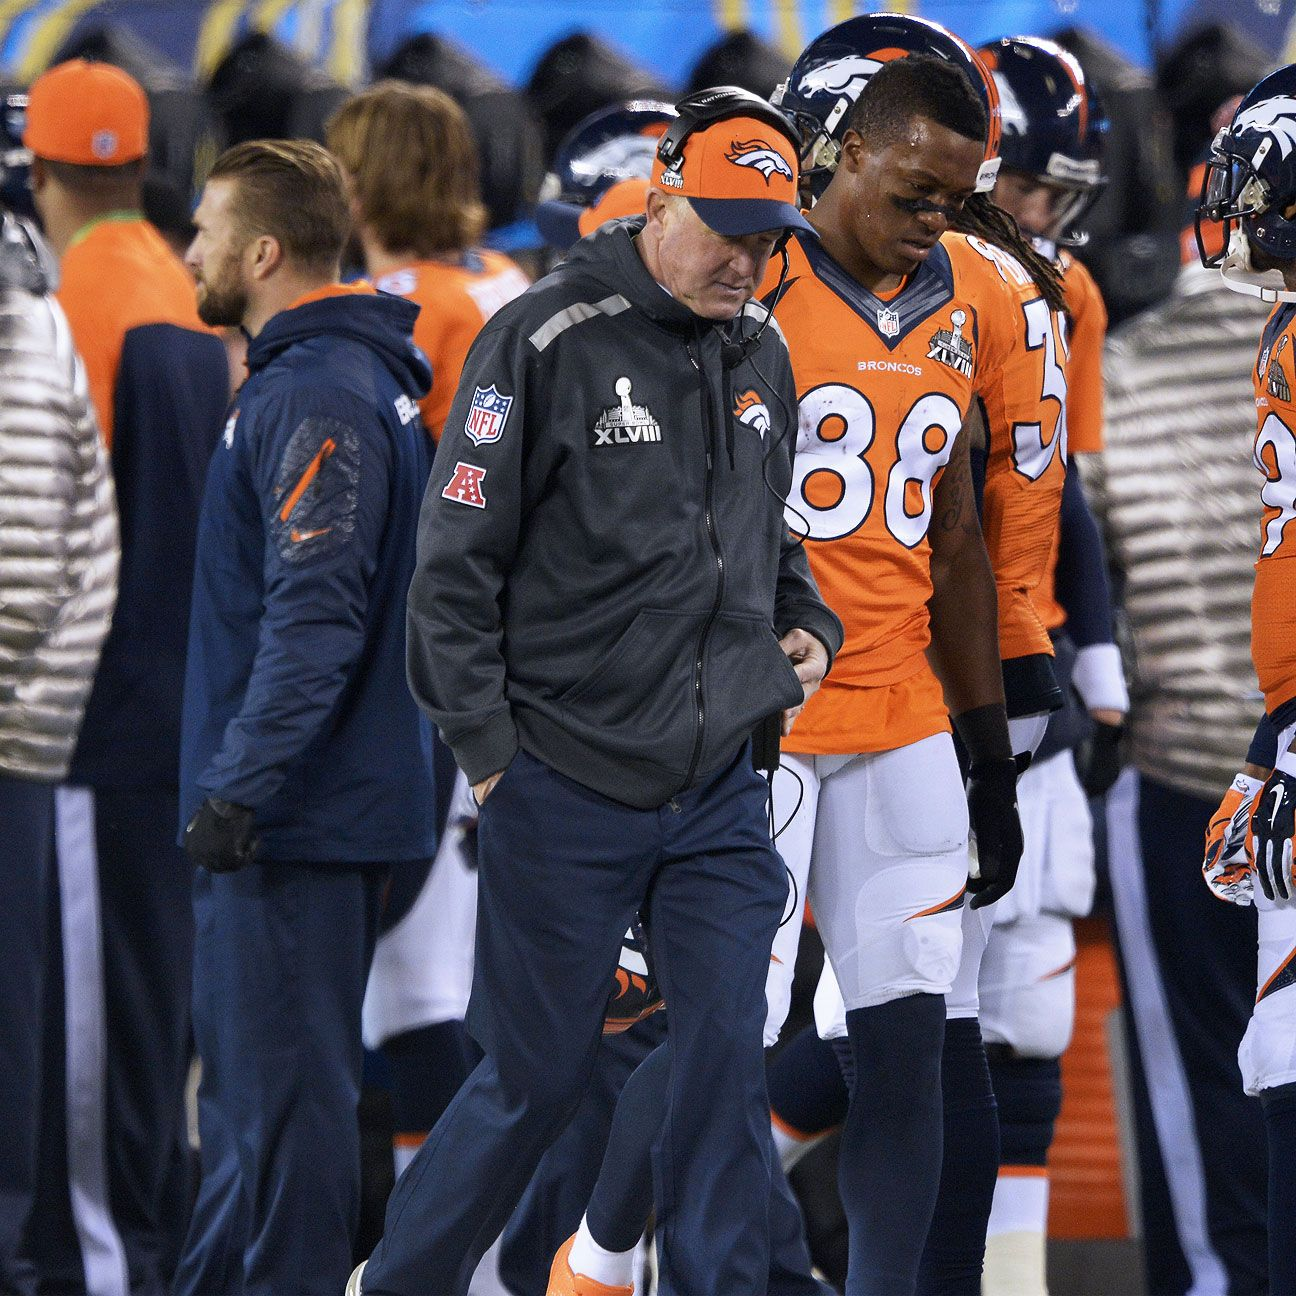 San Diego Chargers Coaches History: Denver Broncos Battle History With Super Bowl Loss